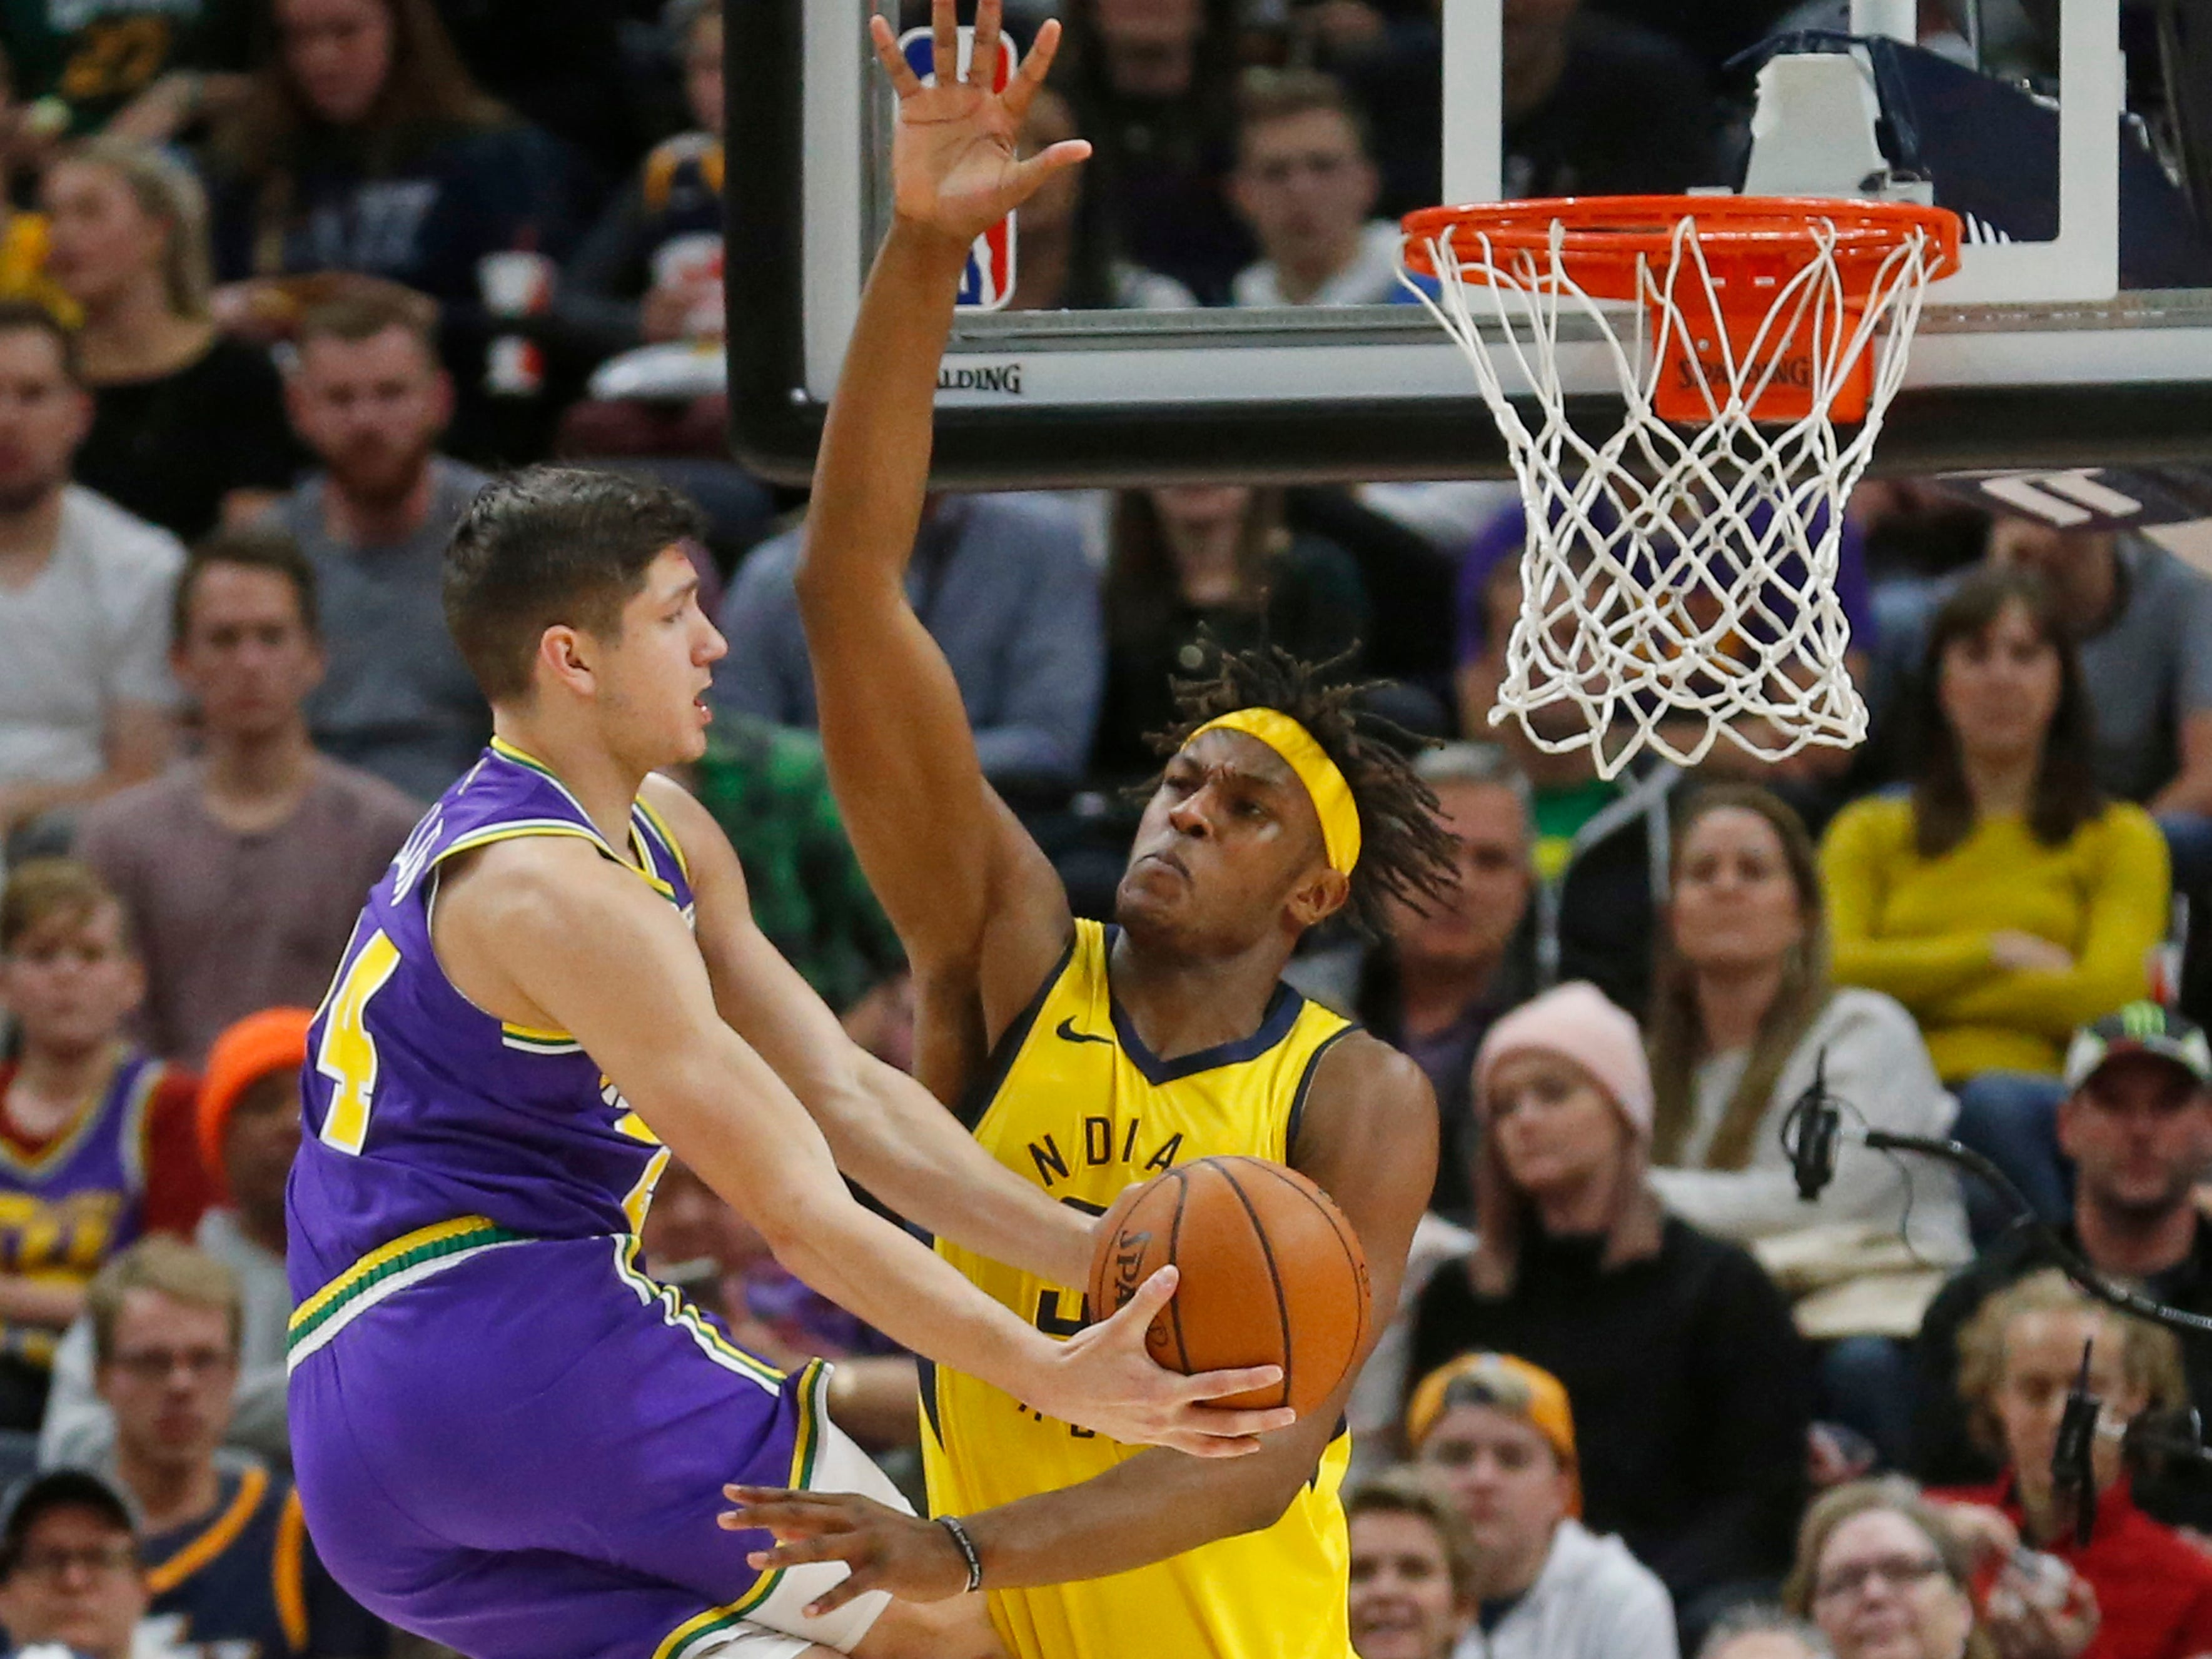 Indiana Pacers center Myles Turner, right, defends against Utah Jazz guard Grayson Allen, left, in the first half during an NBA basketball game Monday Nov. 26, 2018, in Salt Lake City.